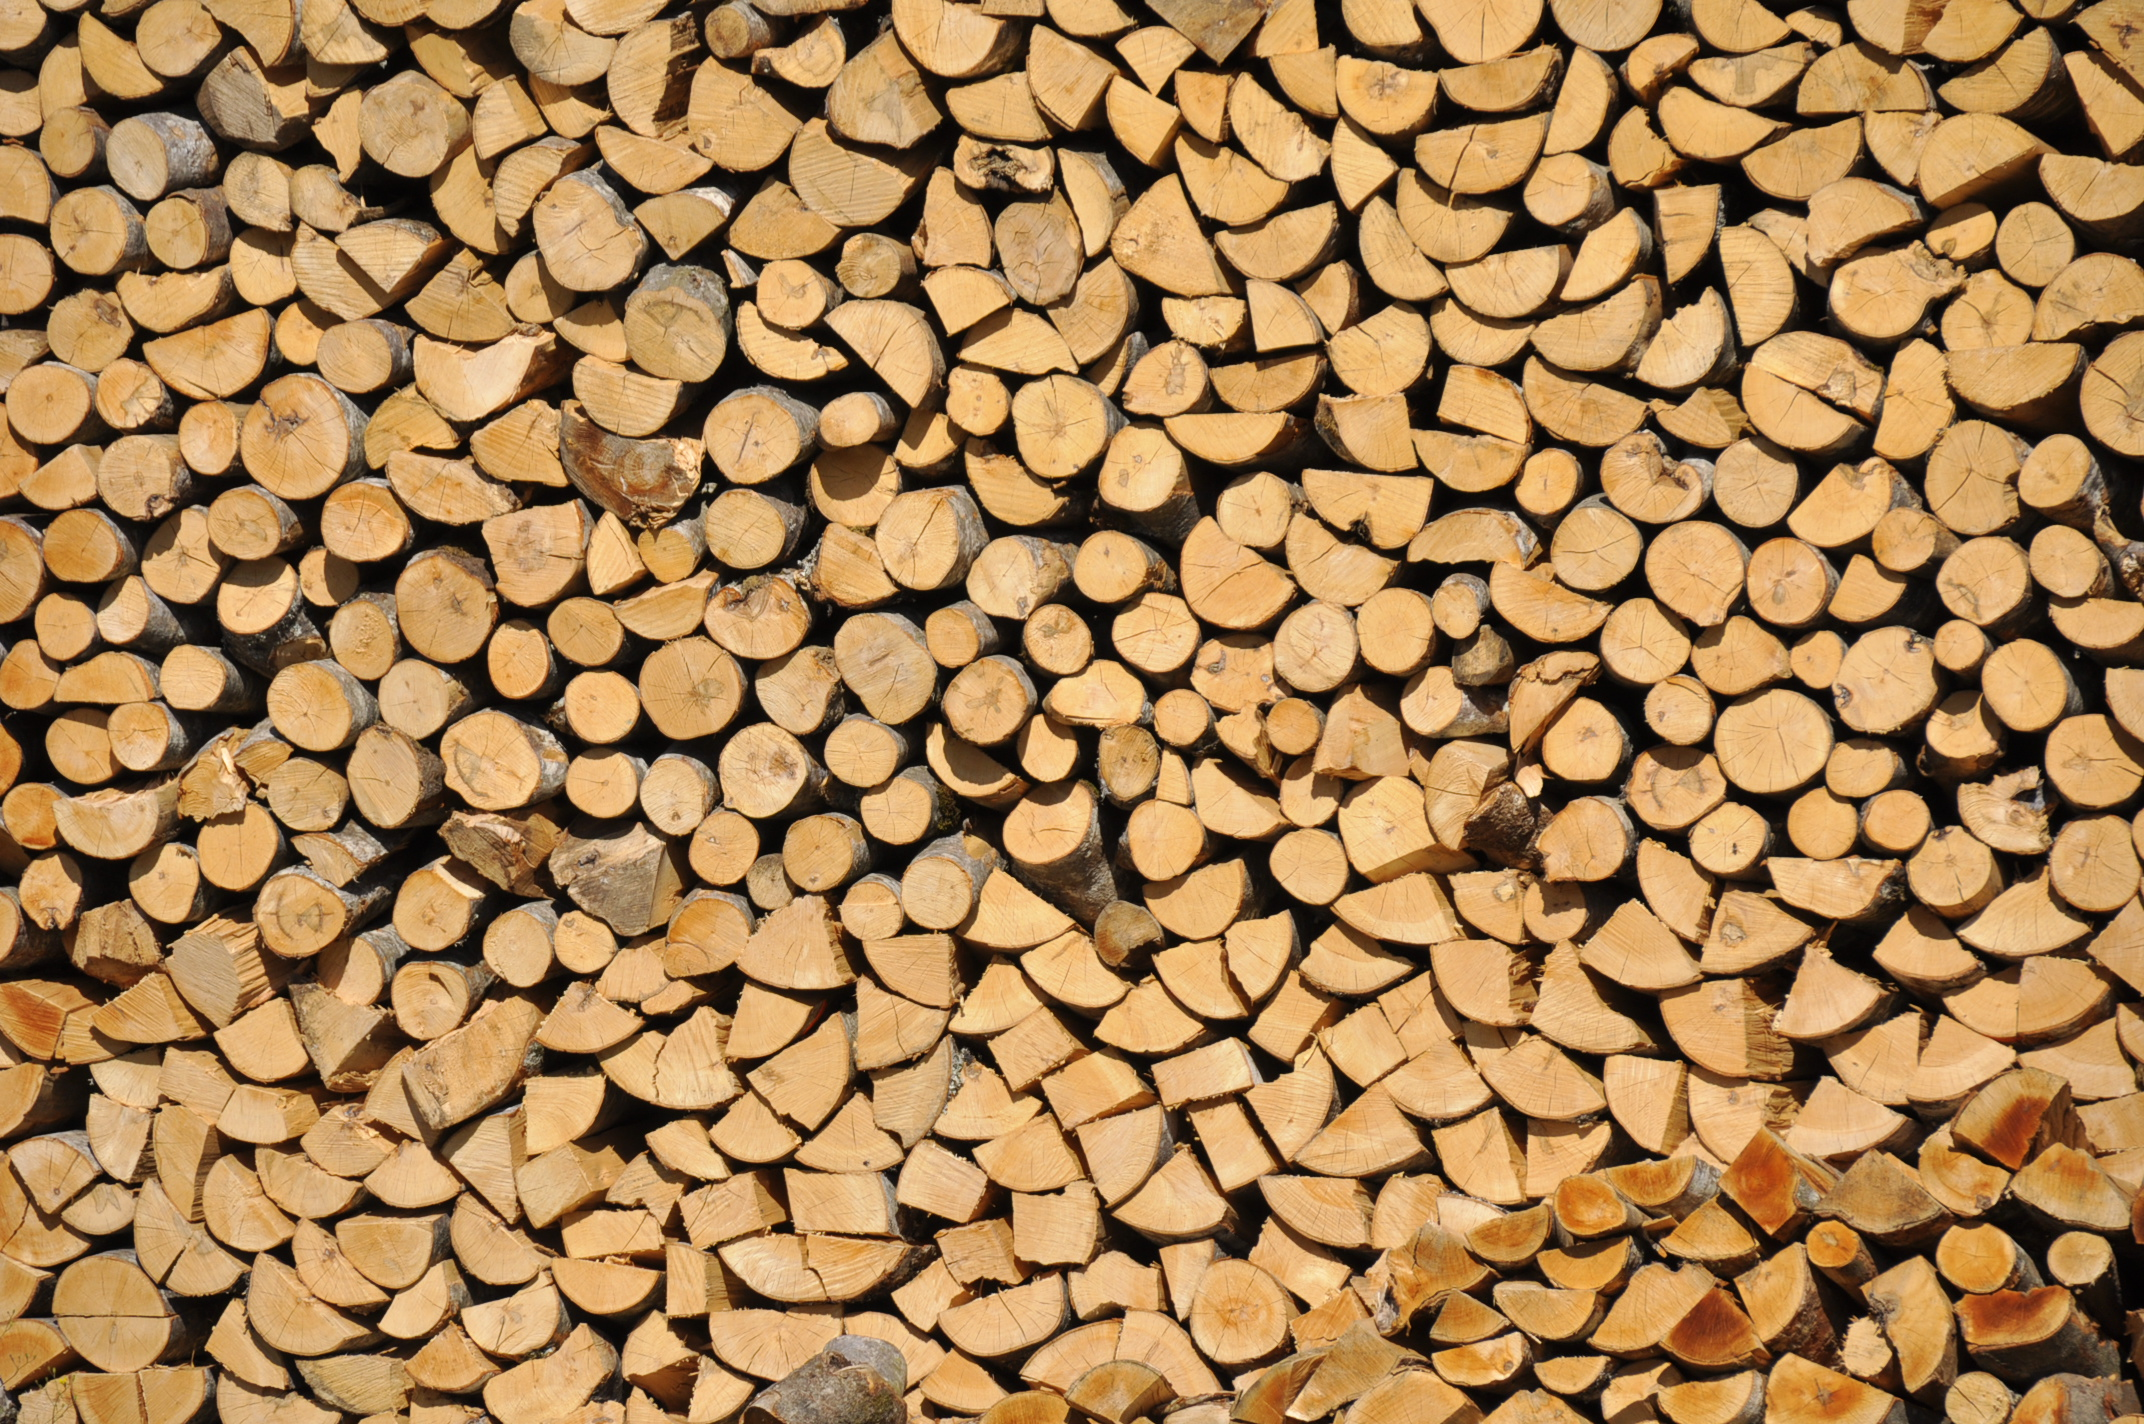 Réserve de bois  Flickr  Photo Sharing! ~ Reserve De Bois